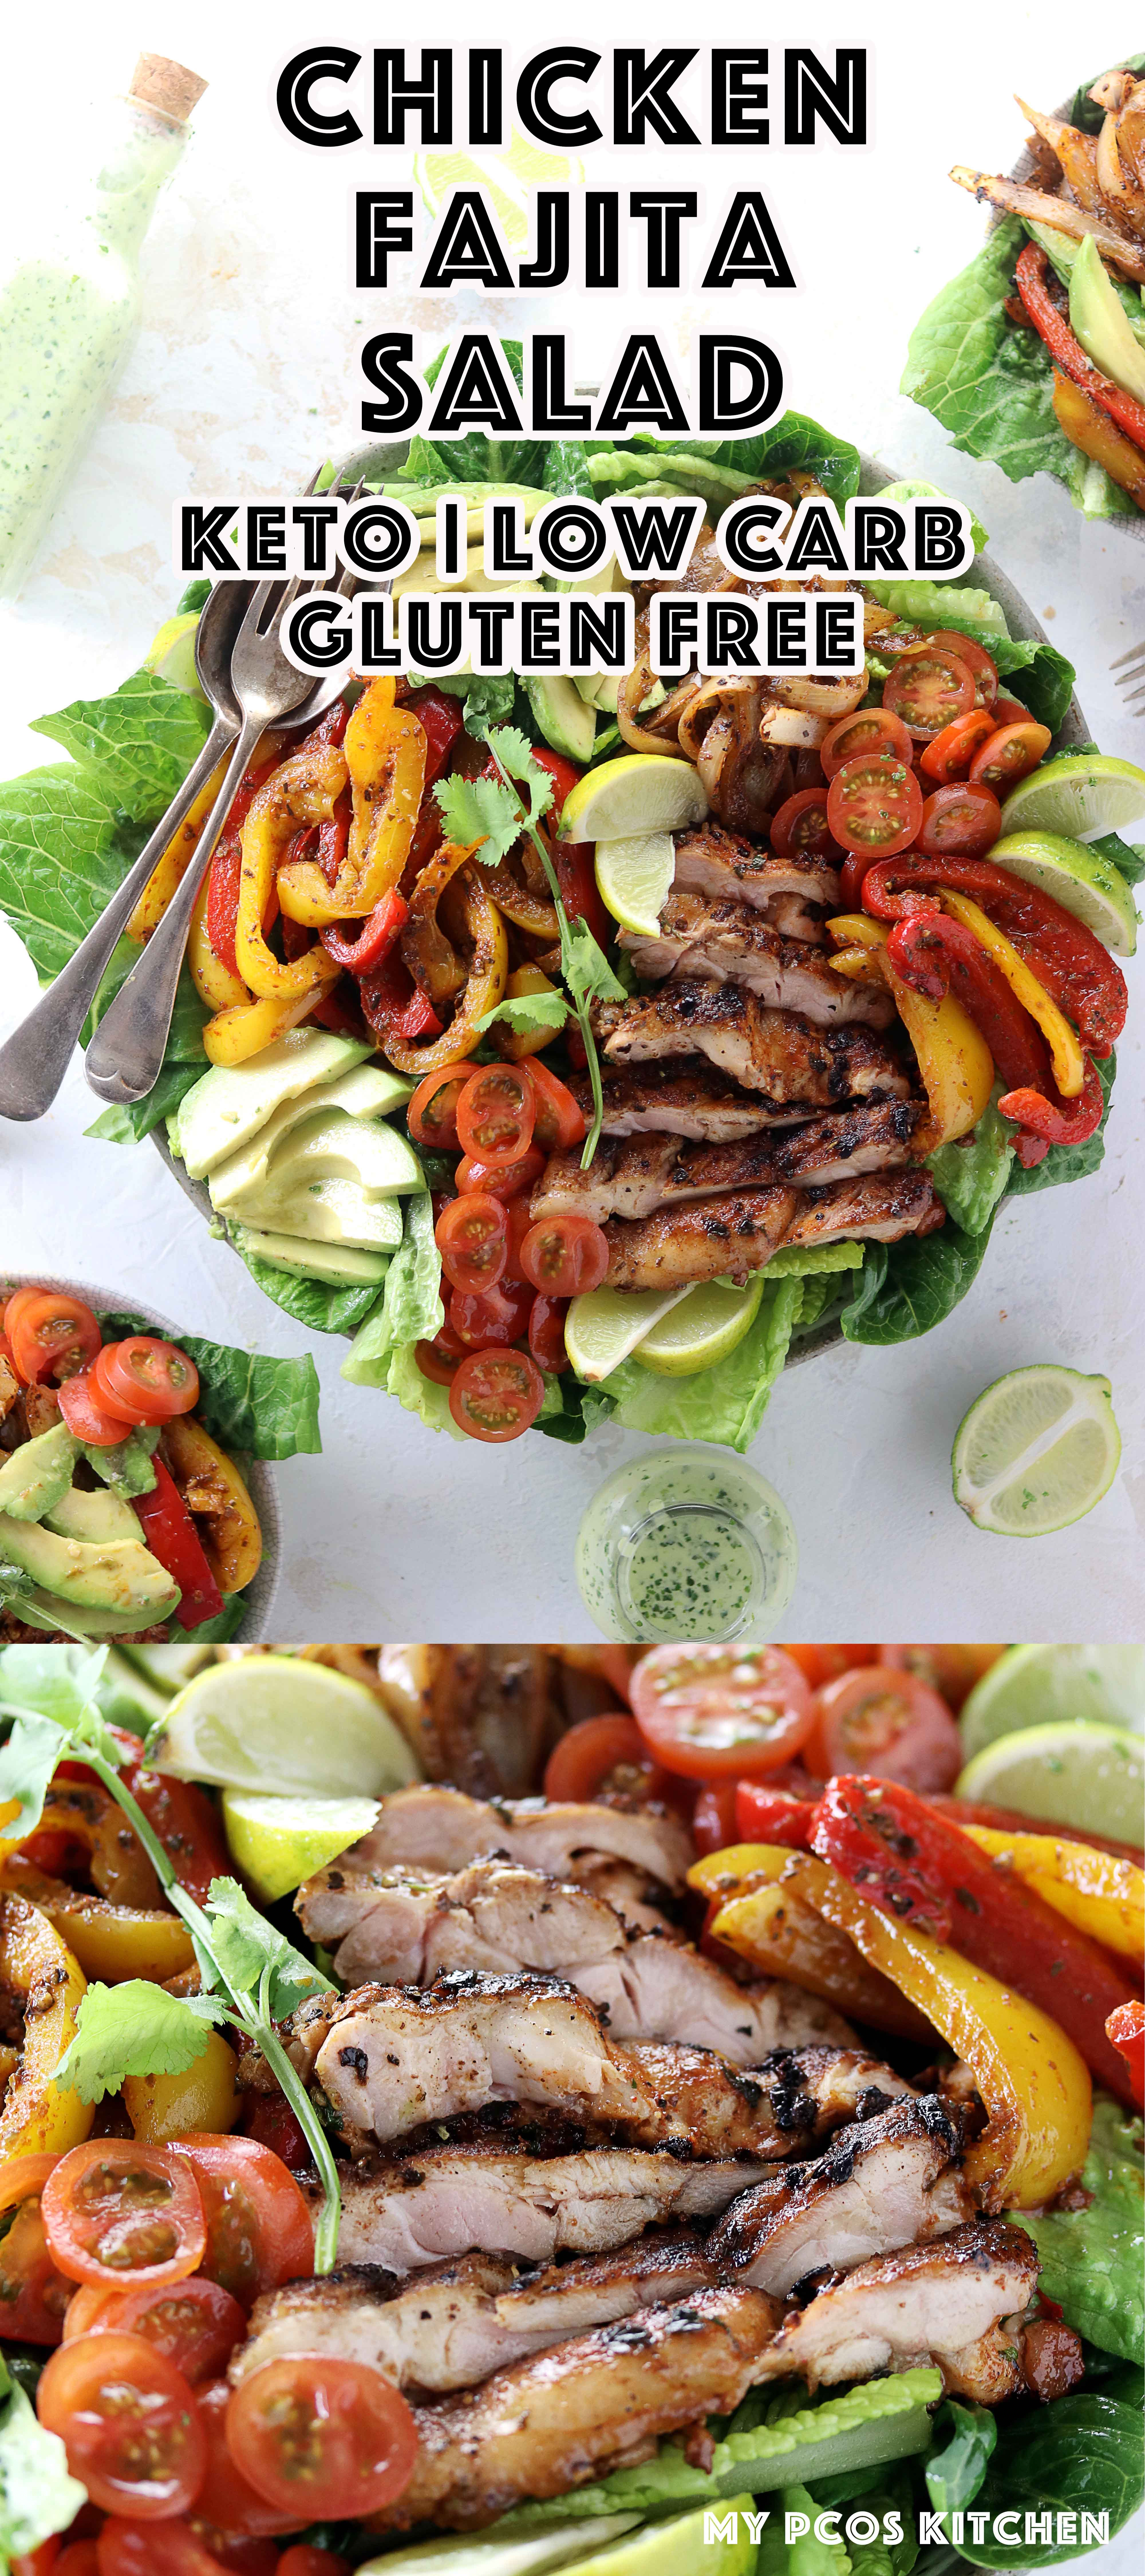 Keto Low Carb Chicken Fajita Salad - My PCOS Kitchen - A delicious low carb fajita salad with marinated chicken thighs and lots of veggies. #chickenfajita #fajitasalad #lowcarb #keto #ketogenic #ketofajitas #lchf